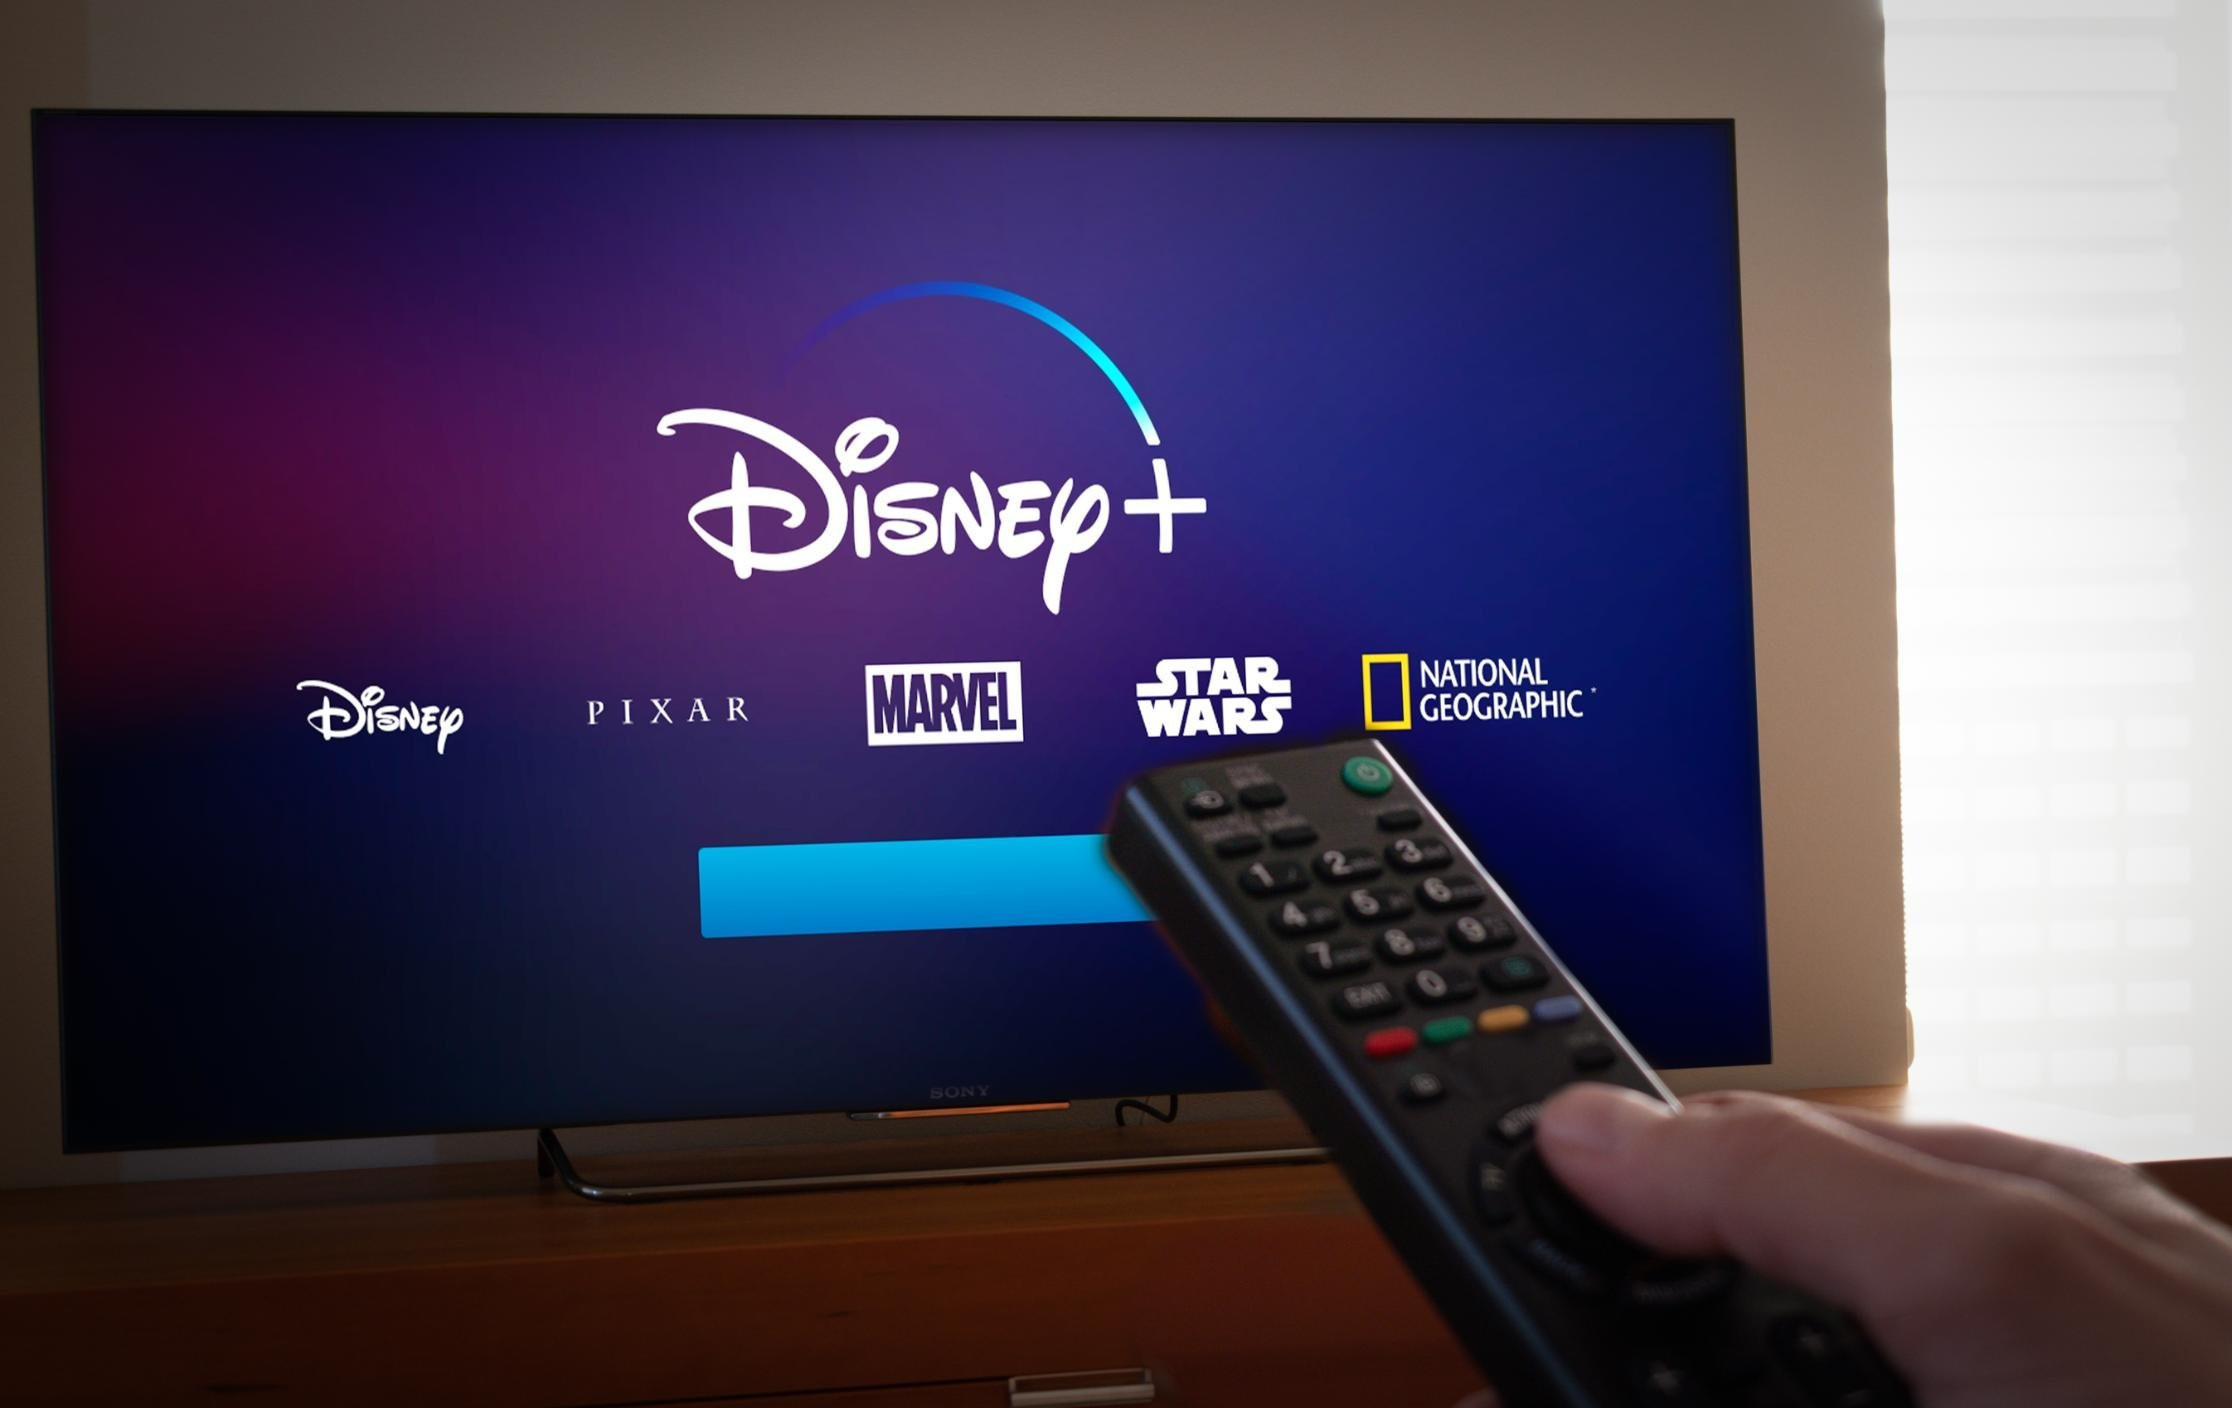 Disney is staking its future on Disney+